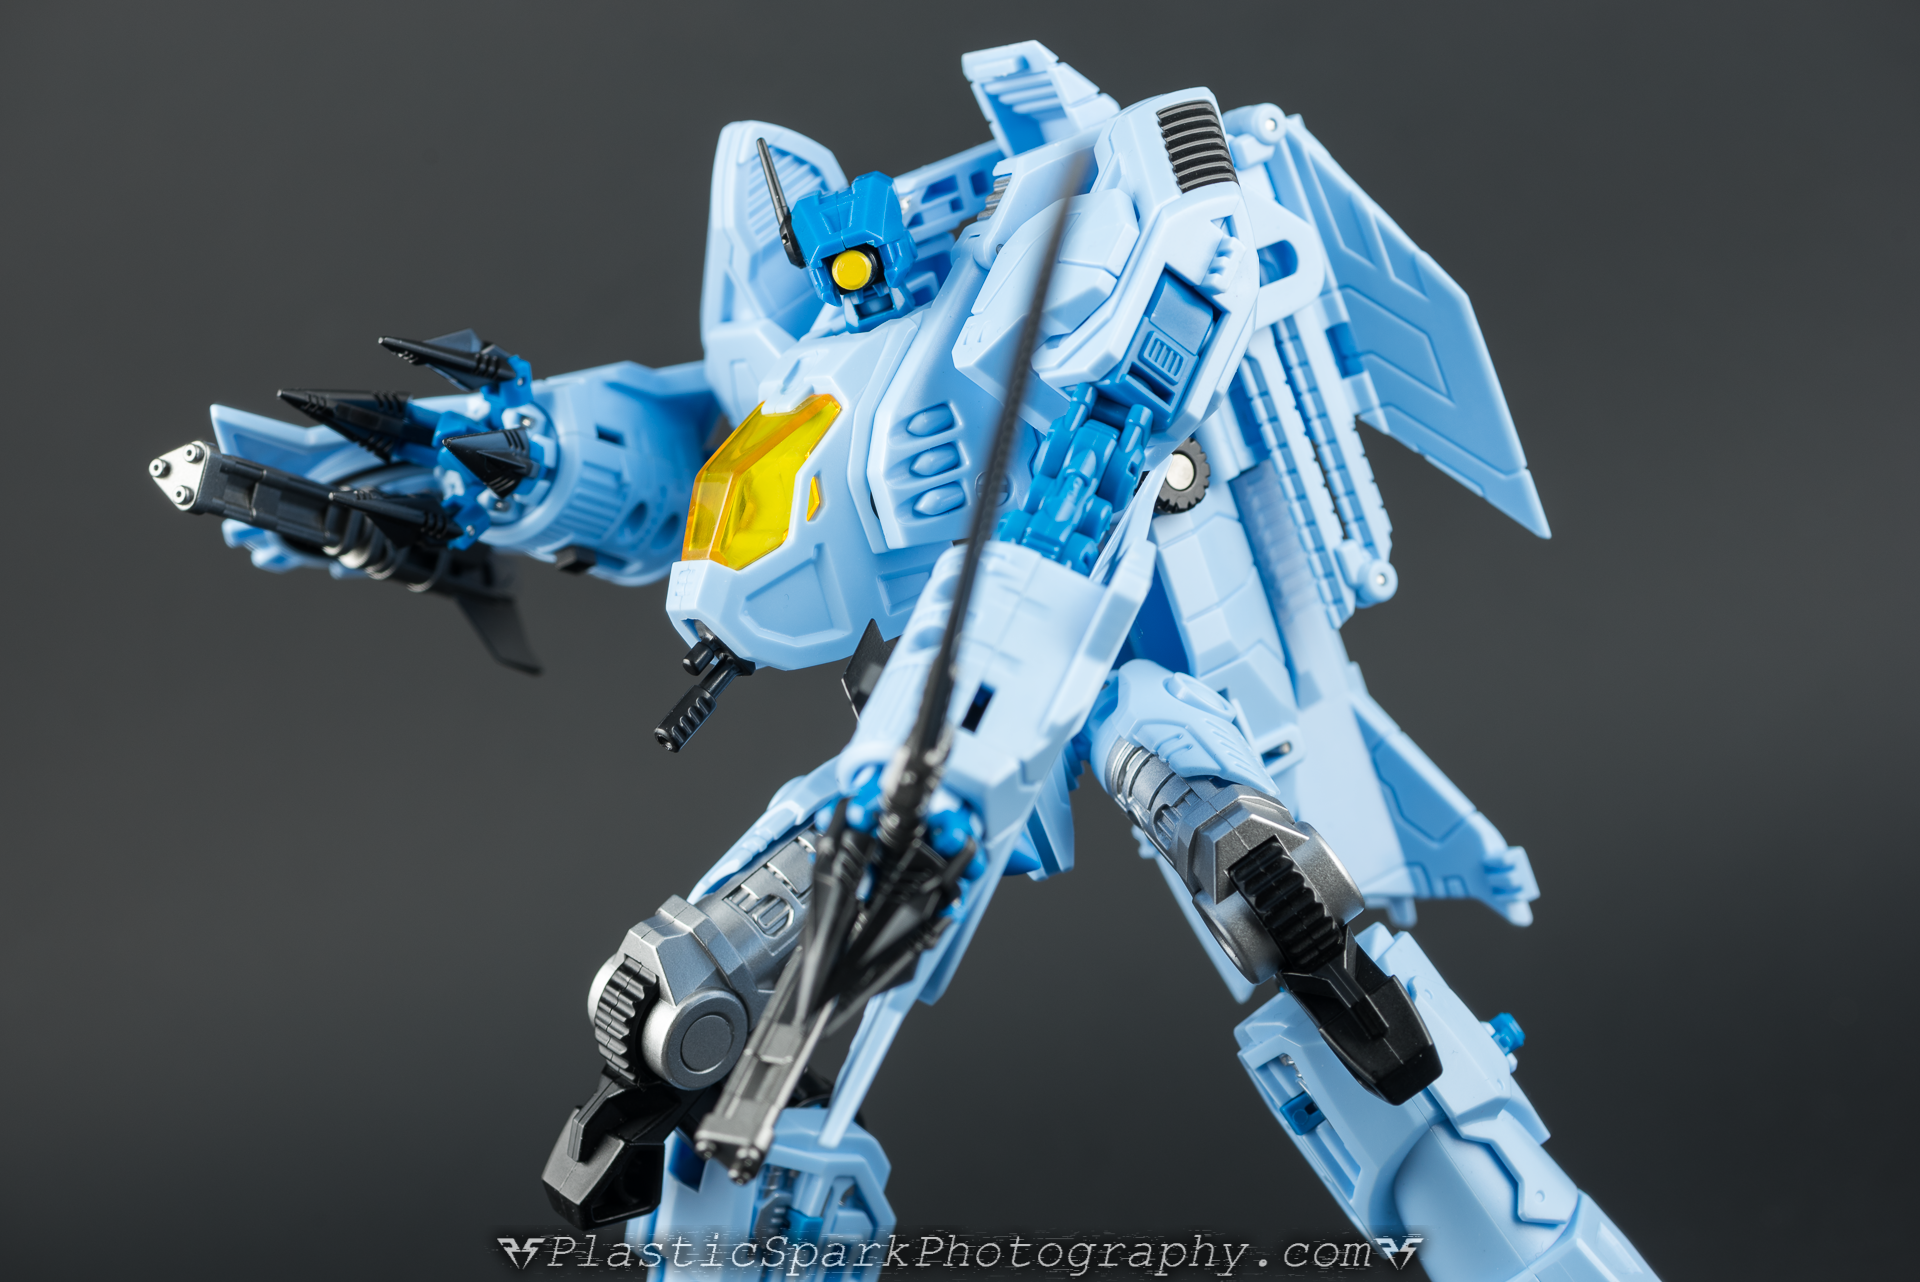 Mastermind-Creations-R-24-Turben-(34-of-34).png